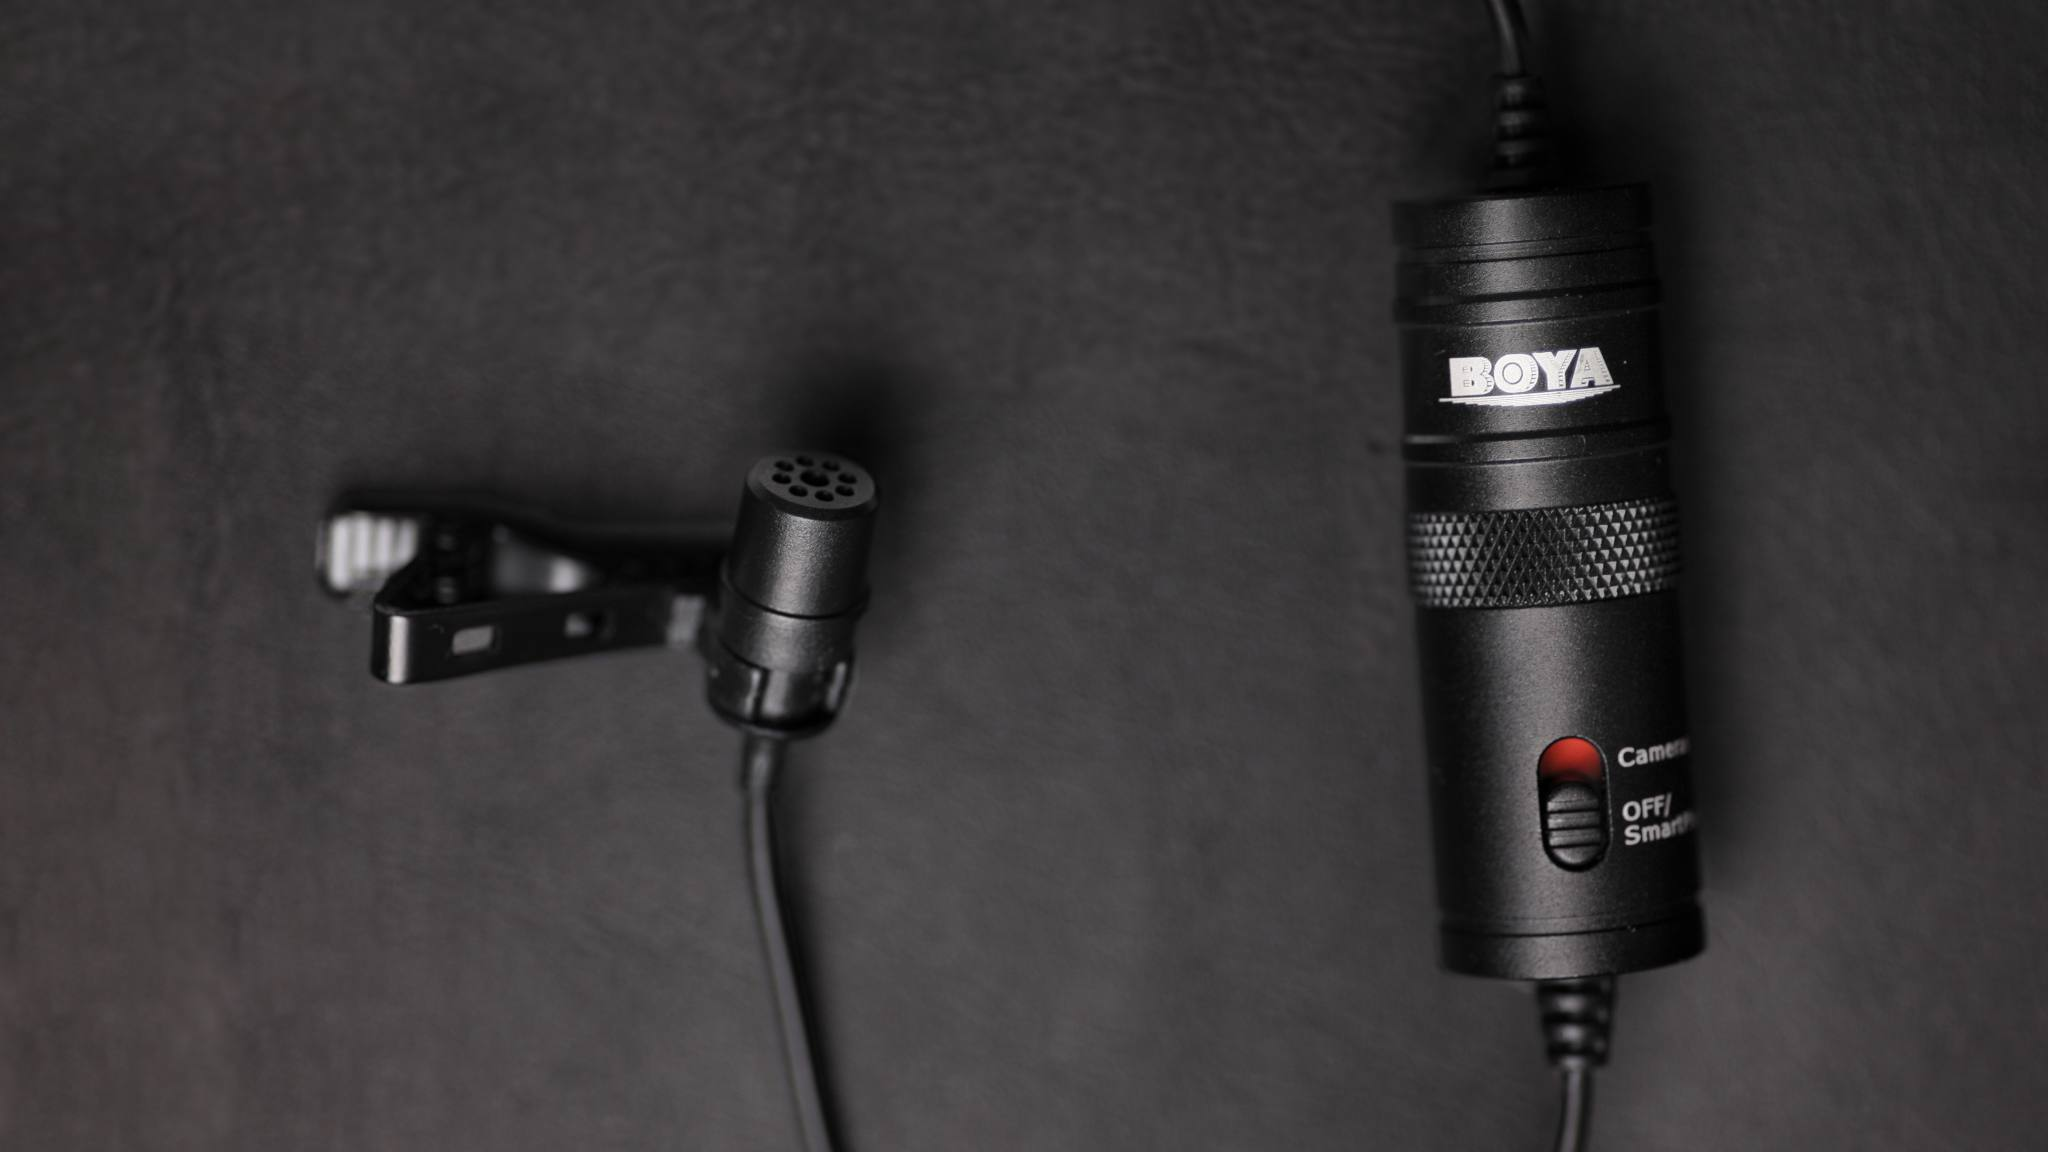 All Geared Up boya-by-m1-dark-banner Get Better Audio With The Multi Functional BOYA BY-M1 Lavalier Microphone audio hardware video  sound microphone review microphone lavalier mic lav mic gear review audio